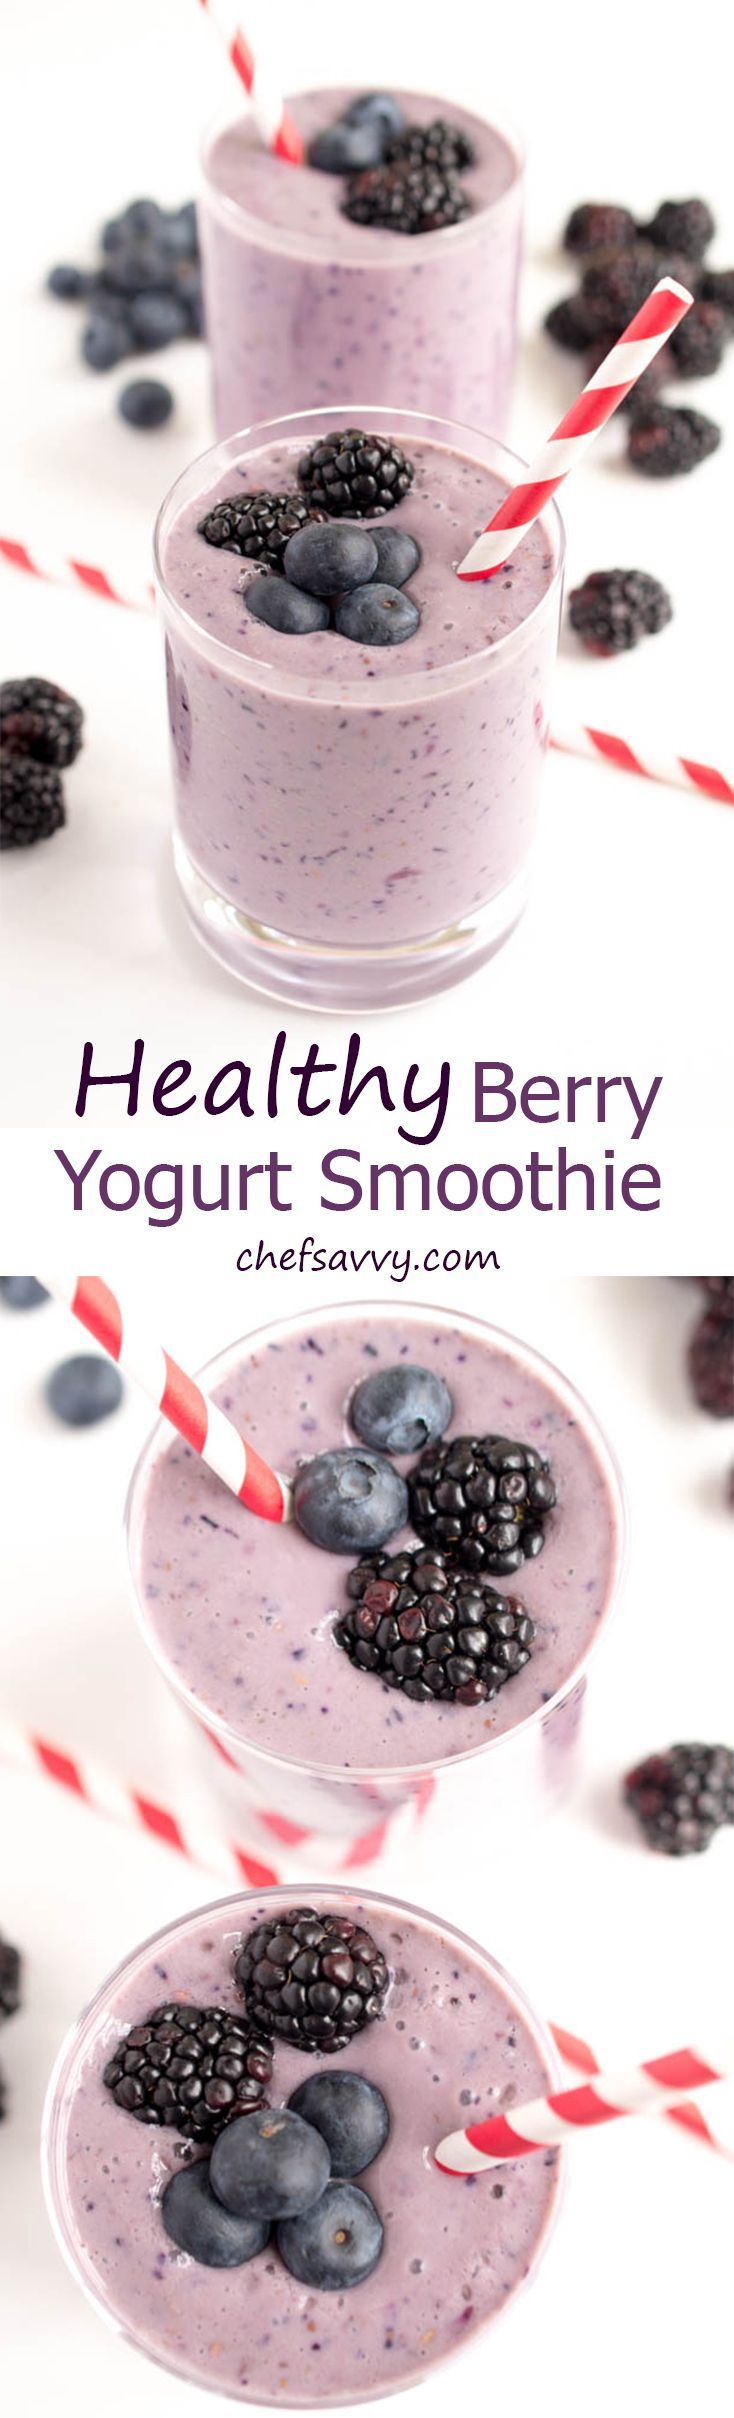 A super simple 5 ingredient Gluten Free Healthy Berry Yogurt Smoothie. Protein packed to keep you full throughout the day. A perfect on the go breakfast! (I use coconut milk - allergy free)